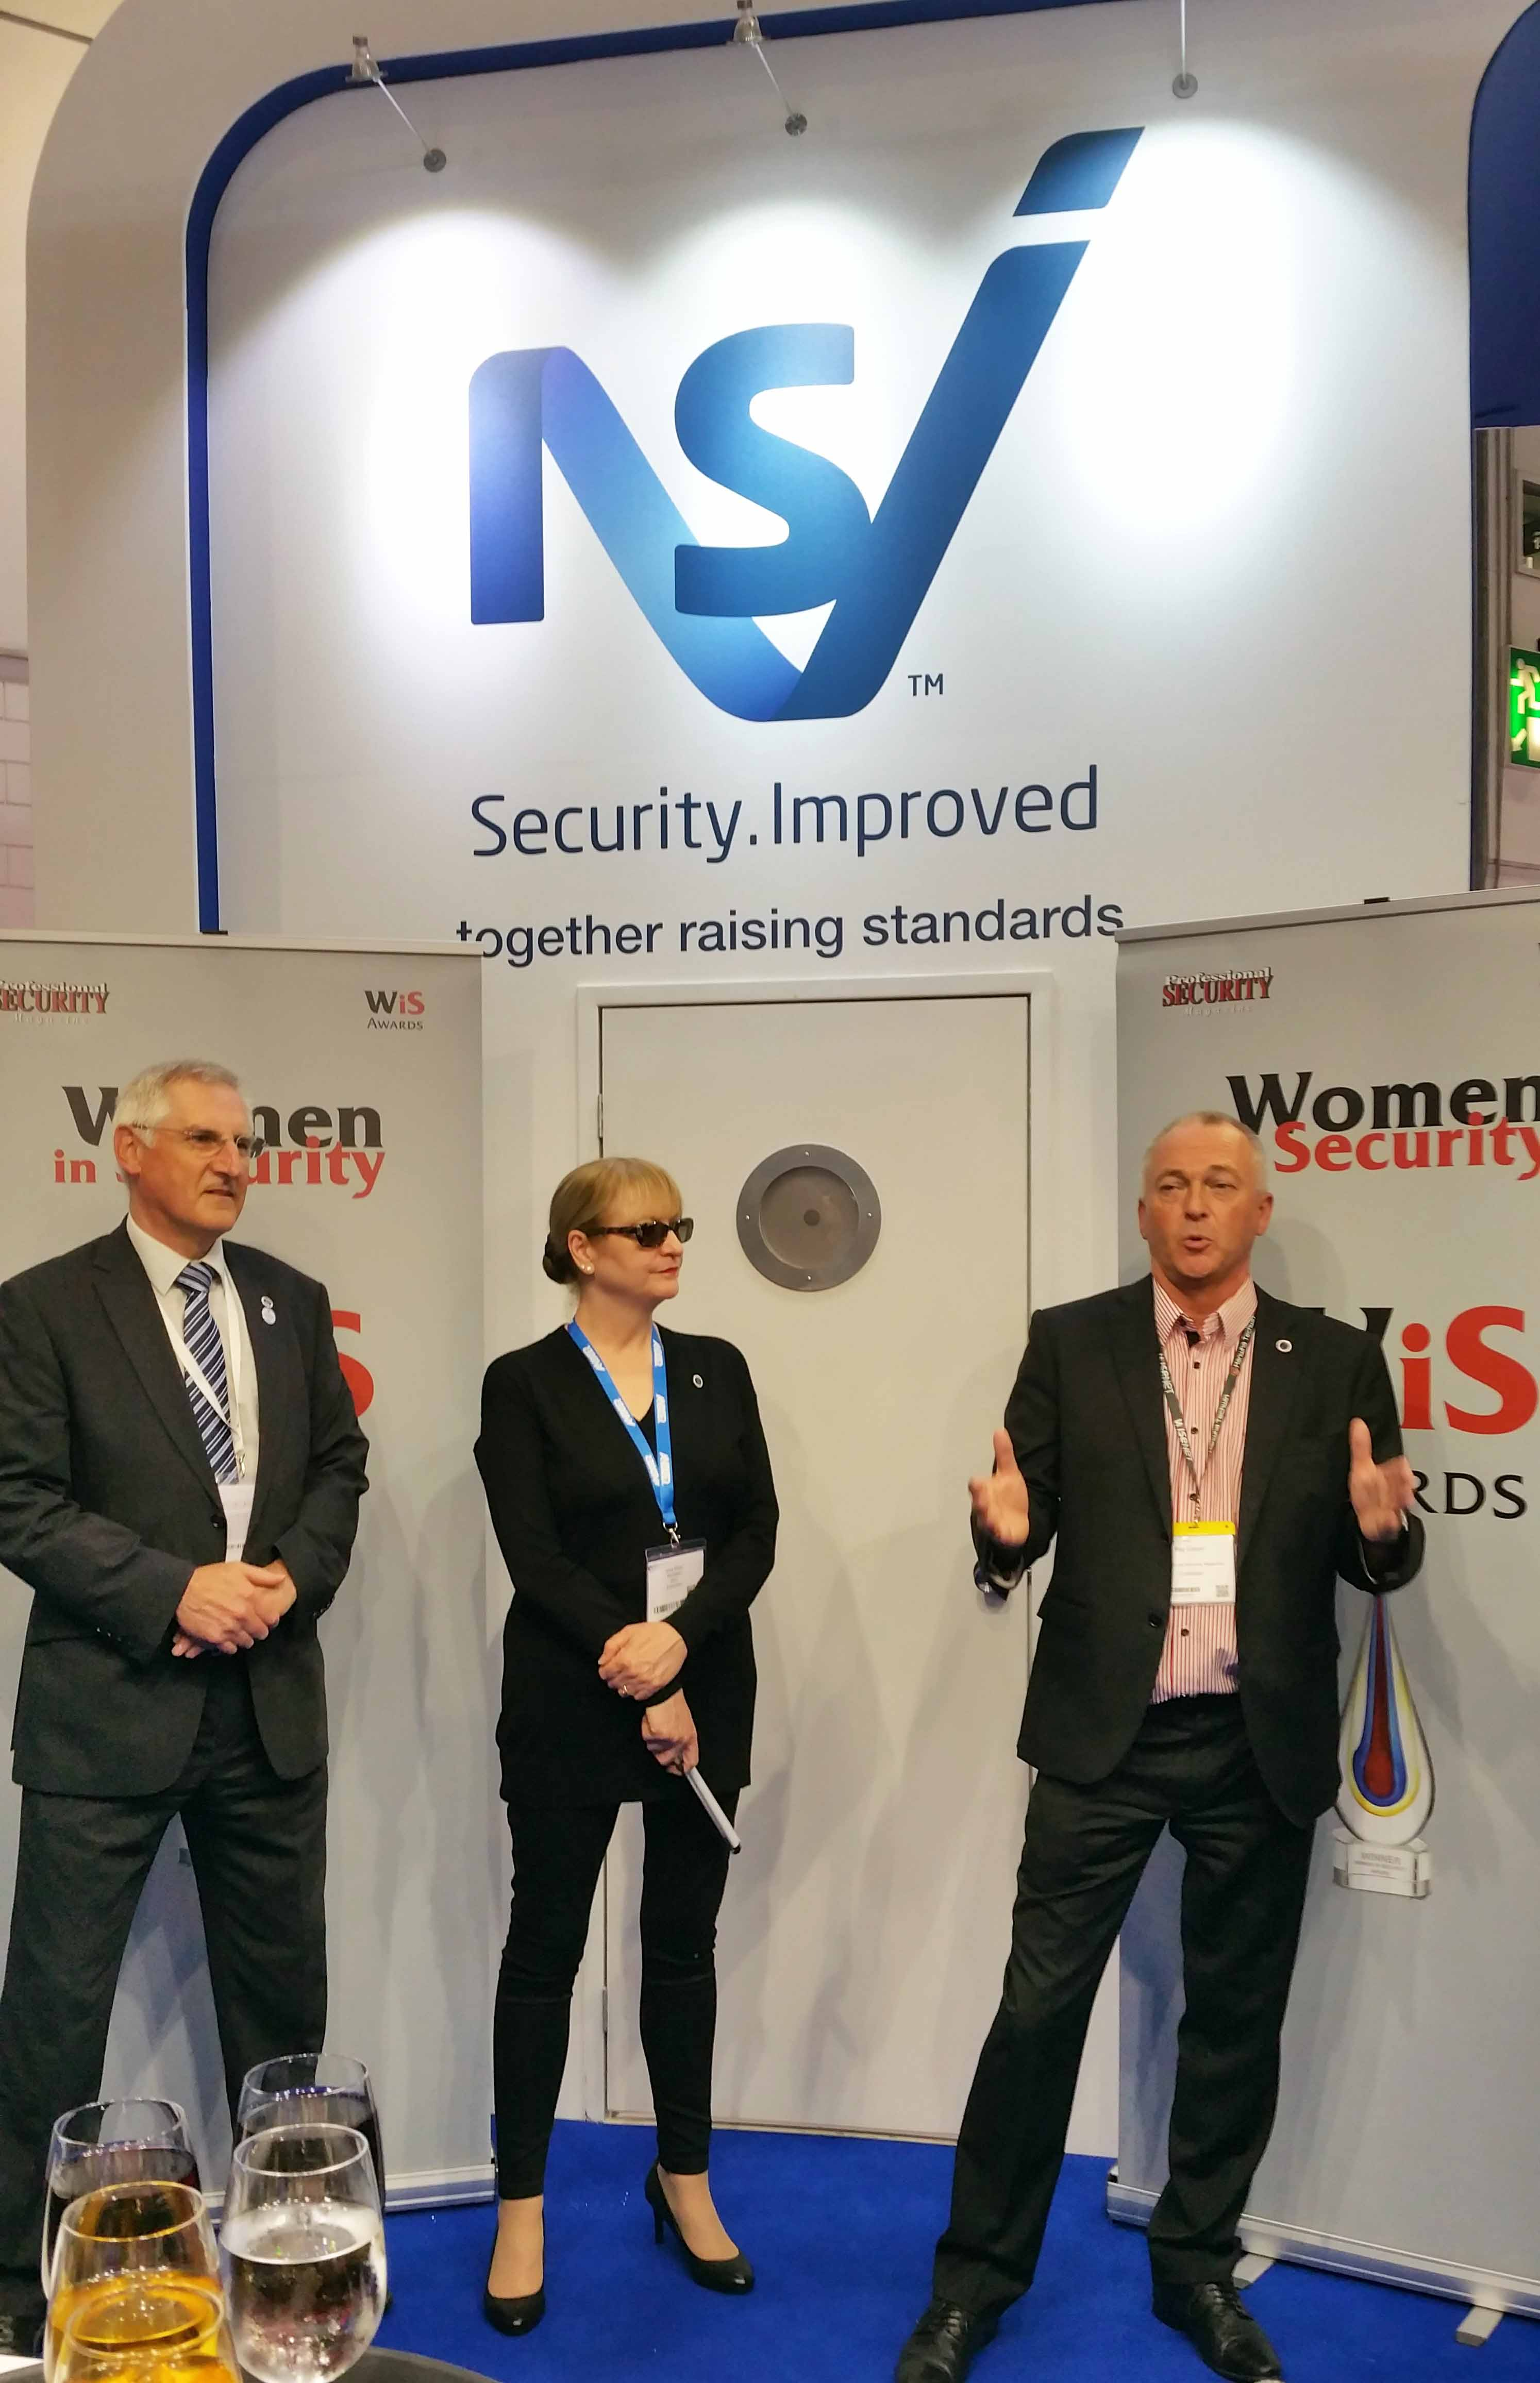 Women in Security Launch